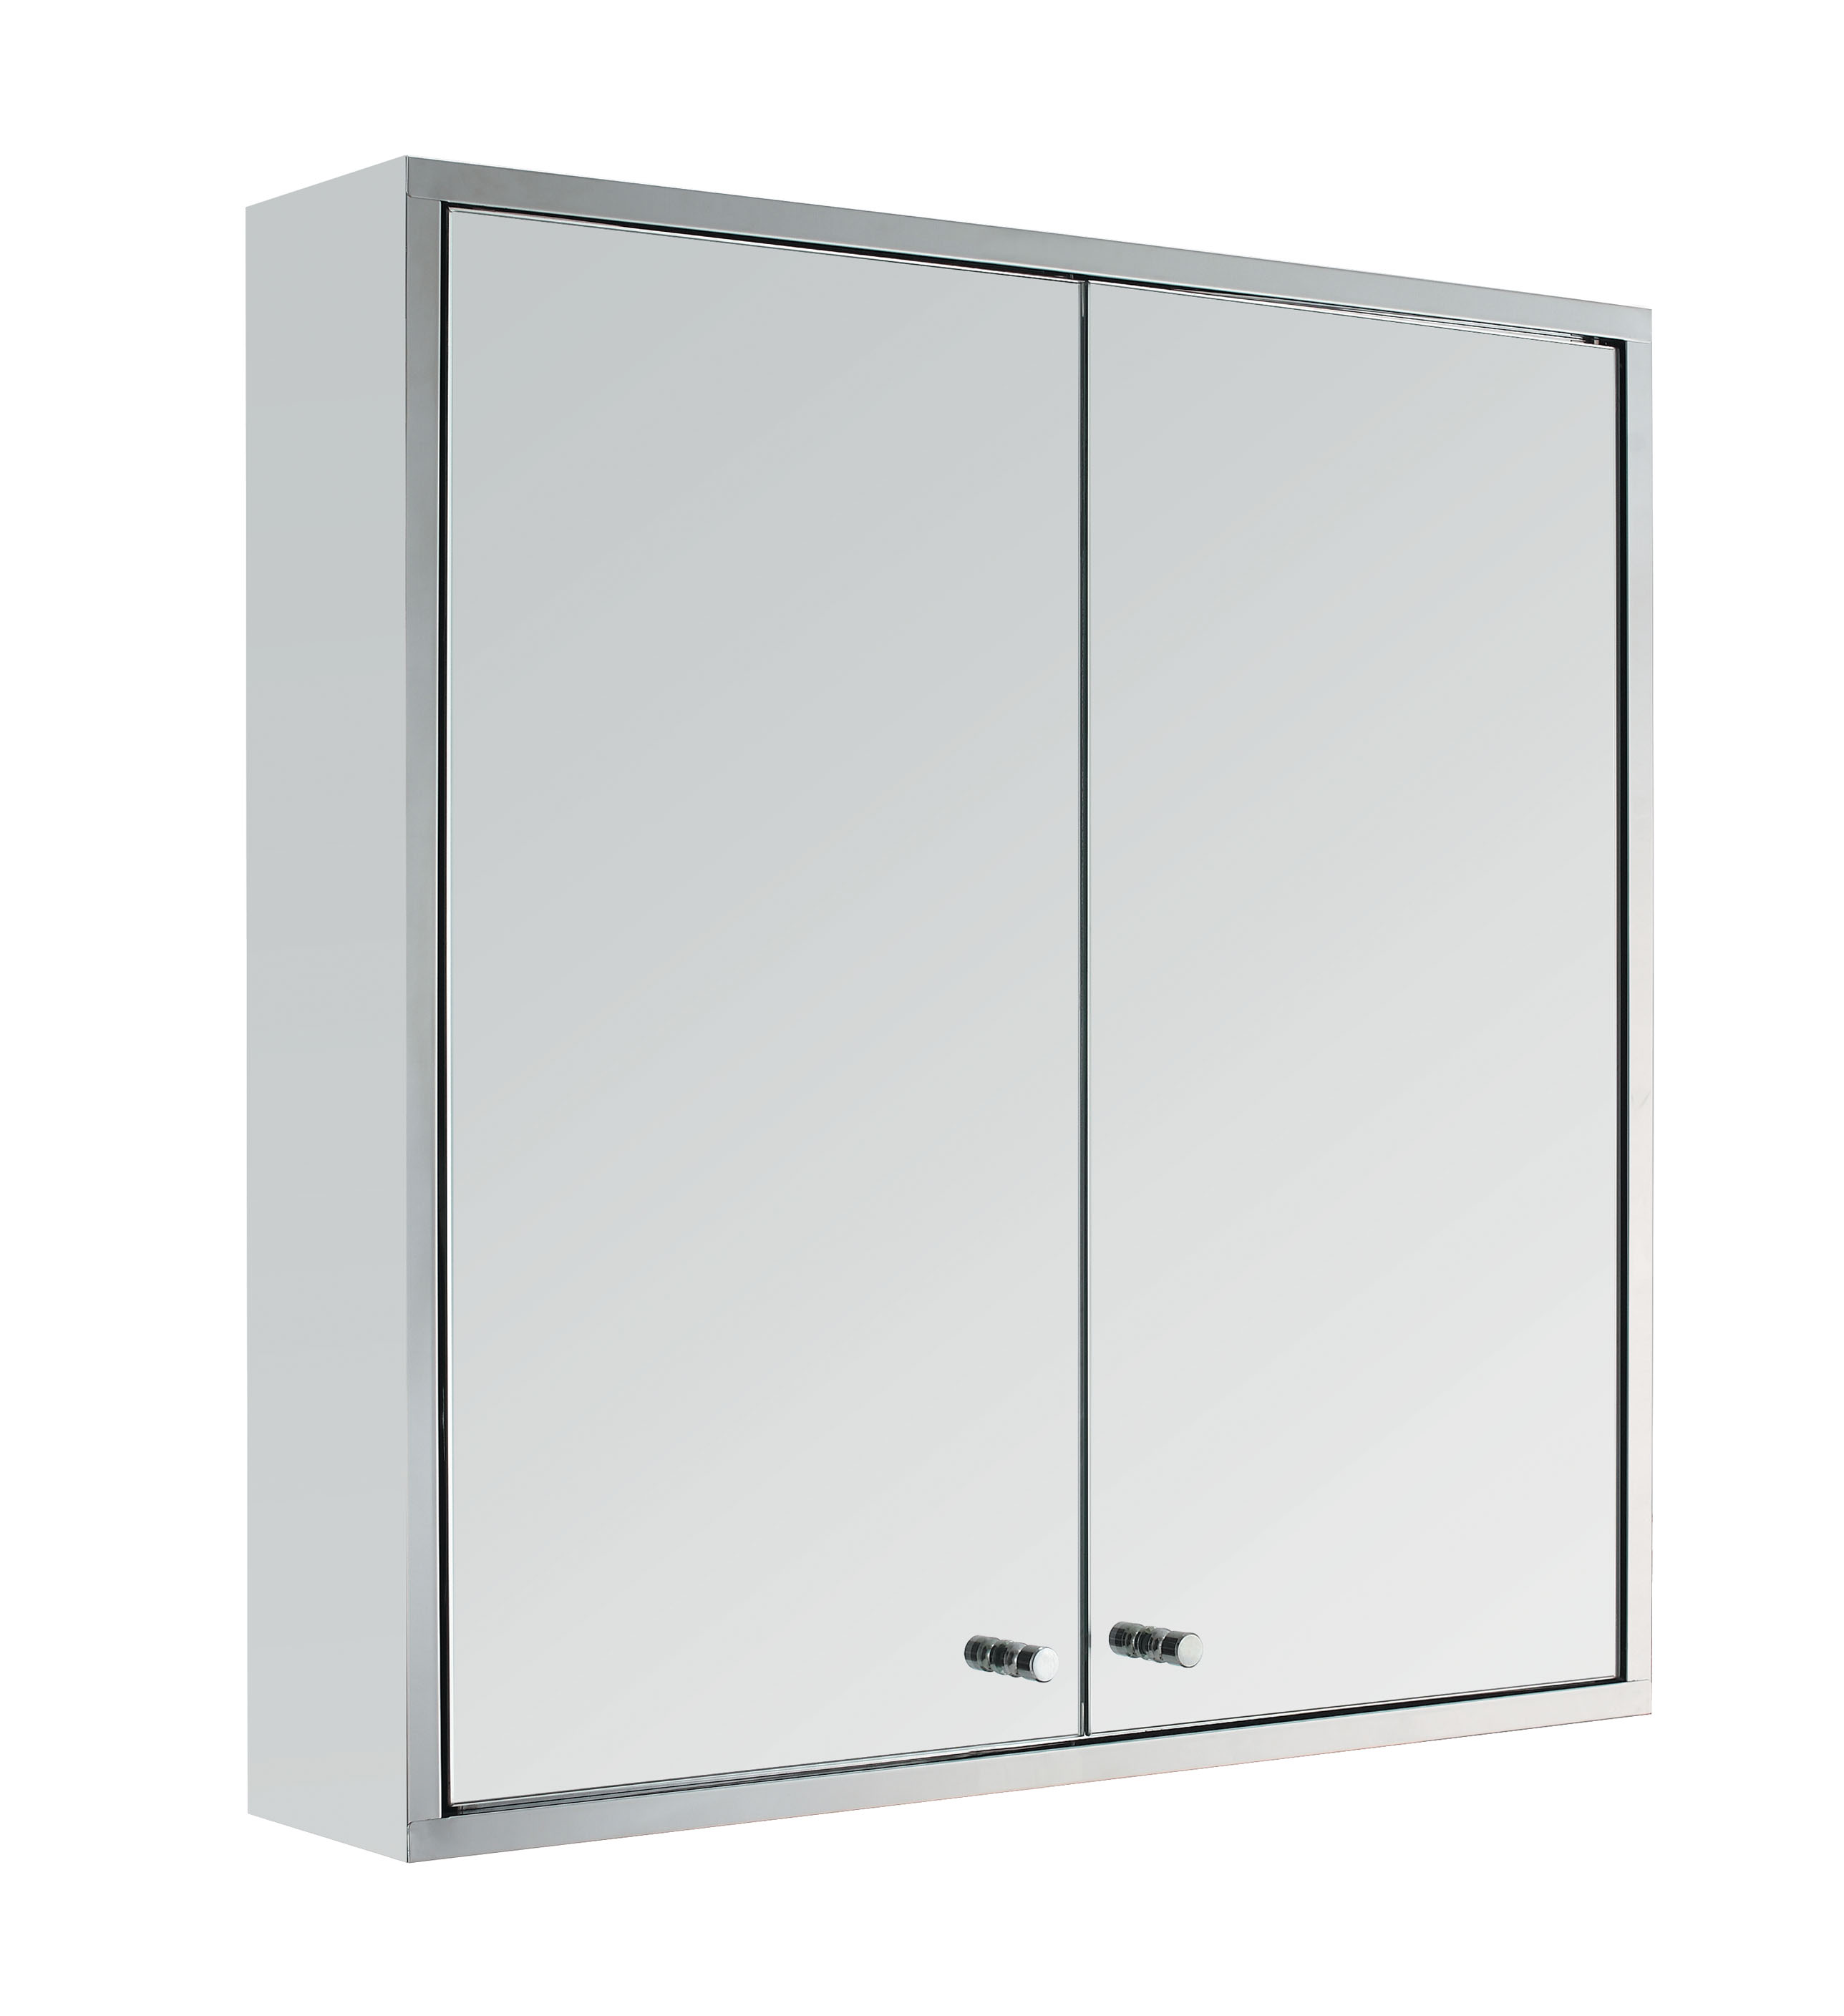 Stainless Steel Wall Mount Bathroom Cabinet With Shelf